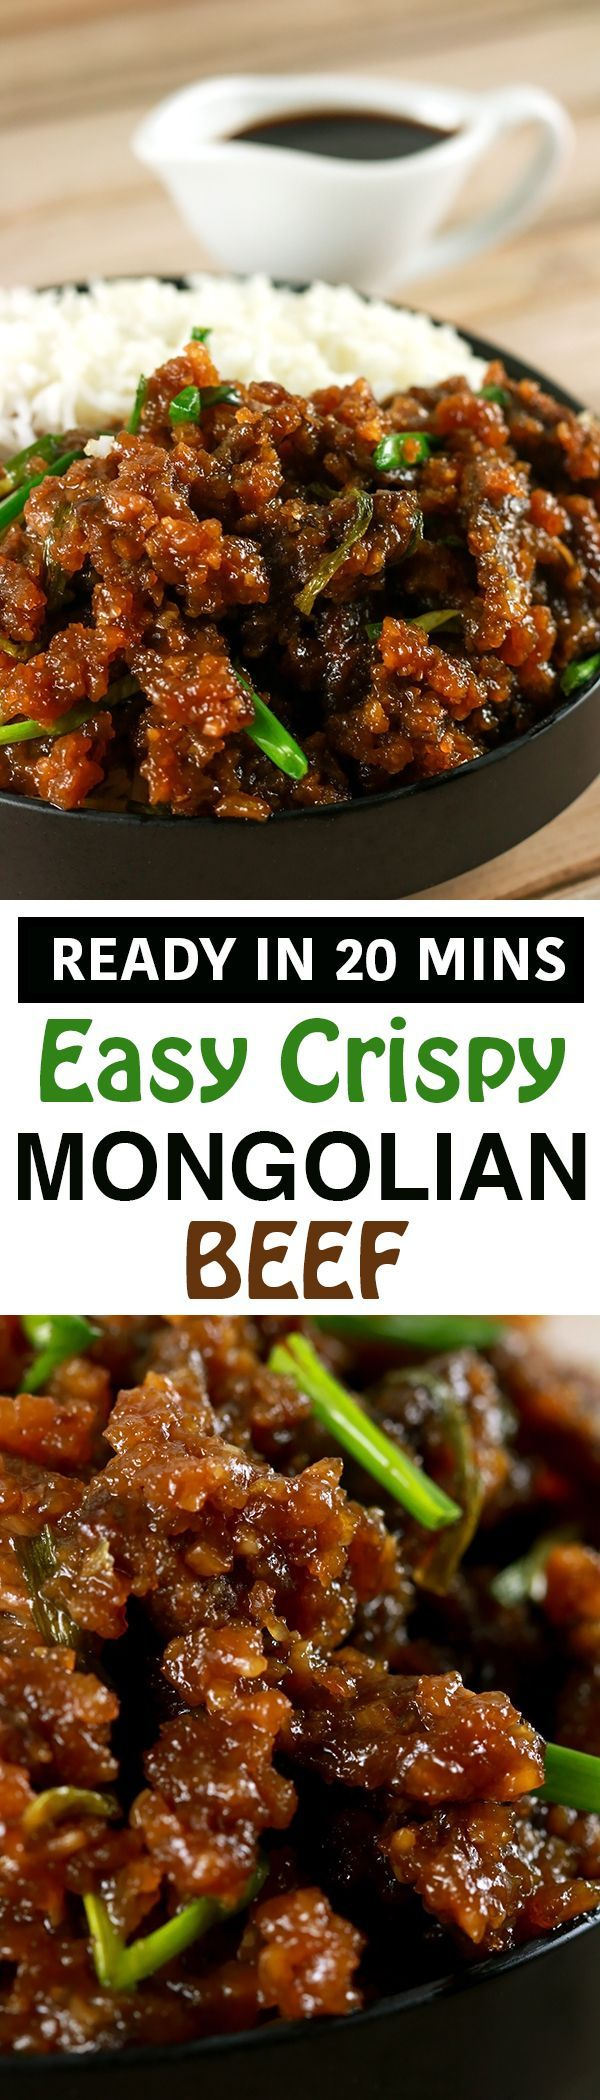 Easy Crispy Mongolian Beef - This Mongolian Beef recipe is super easy to make and uses simple, readily available ingredients! Whip this up in under 20 minutes and have the perfect mid-week dinner meal! | ScrambledChefs.com